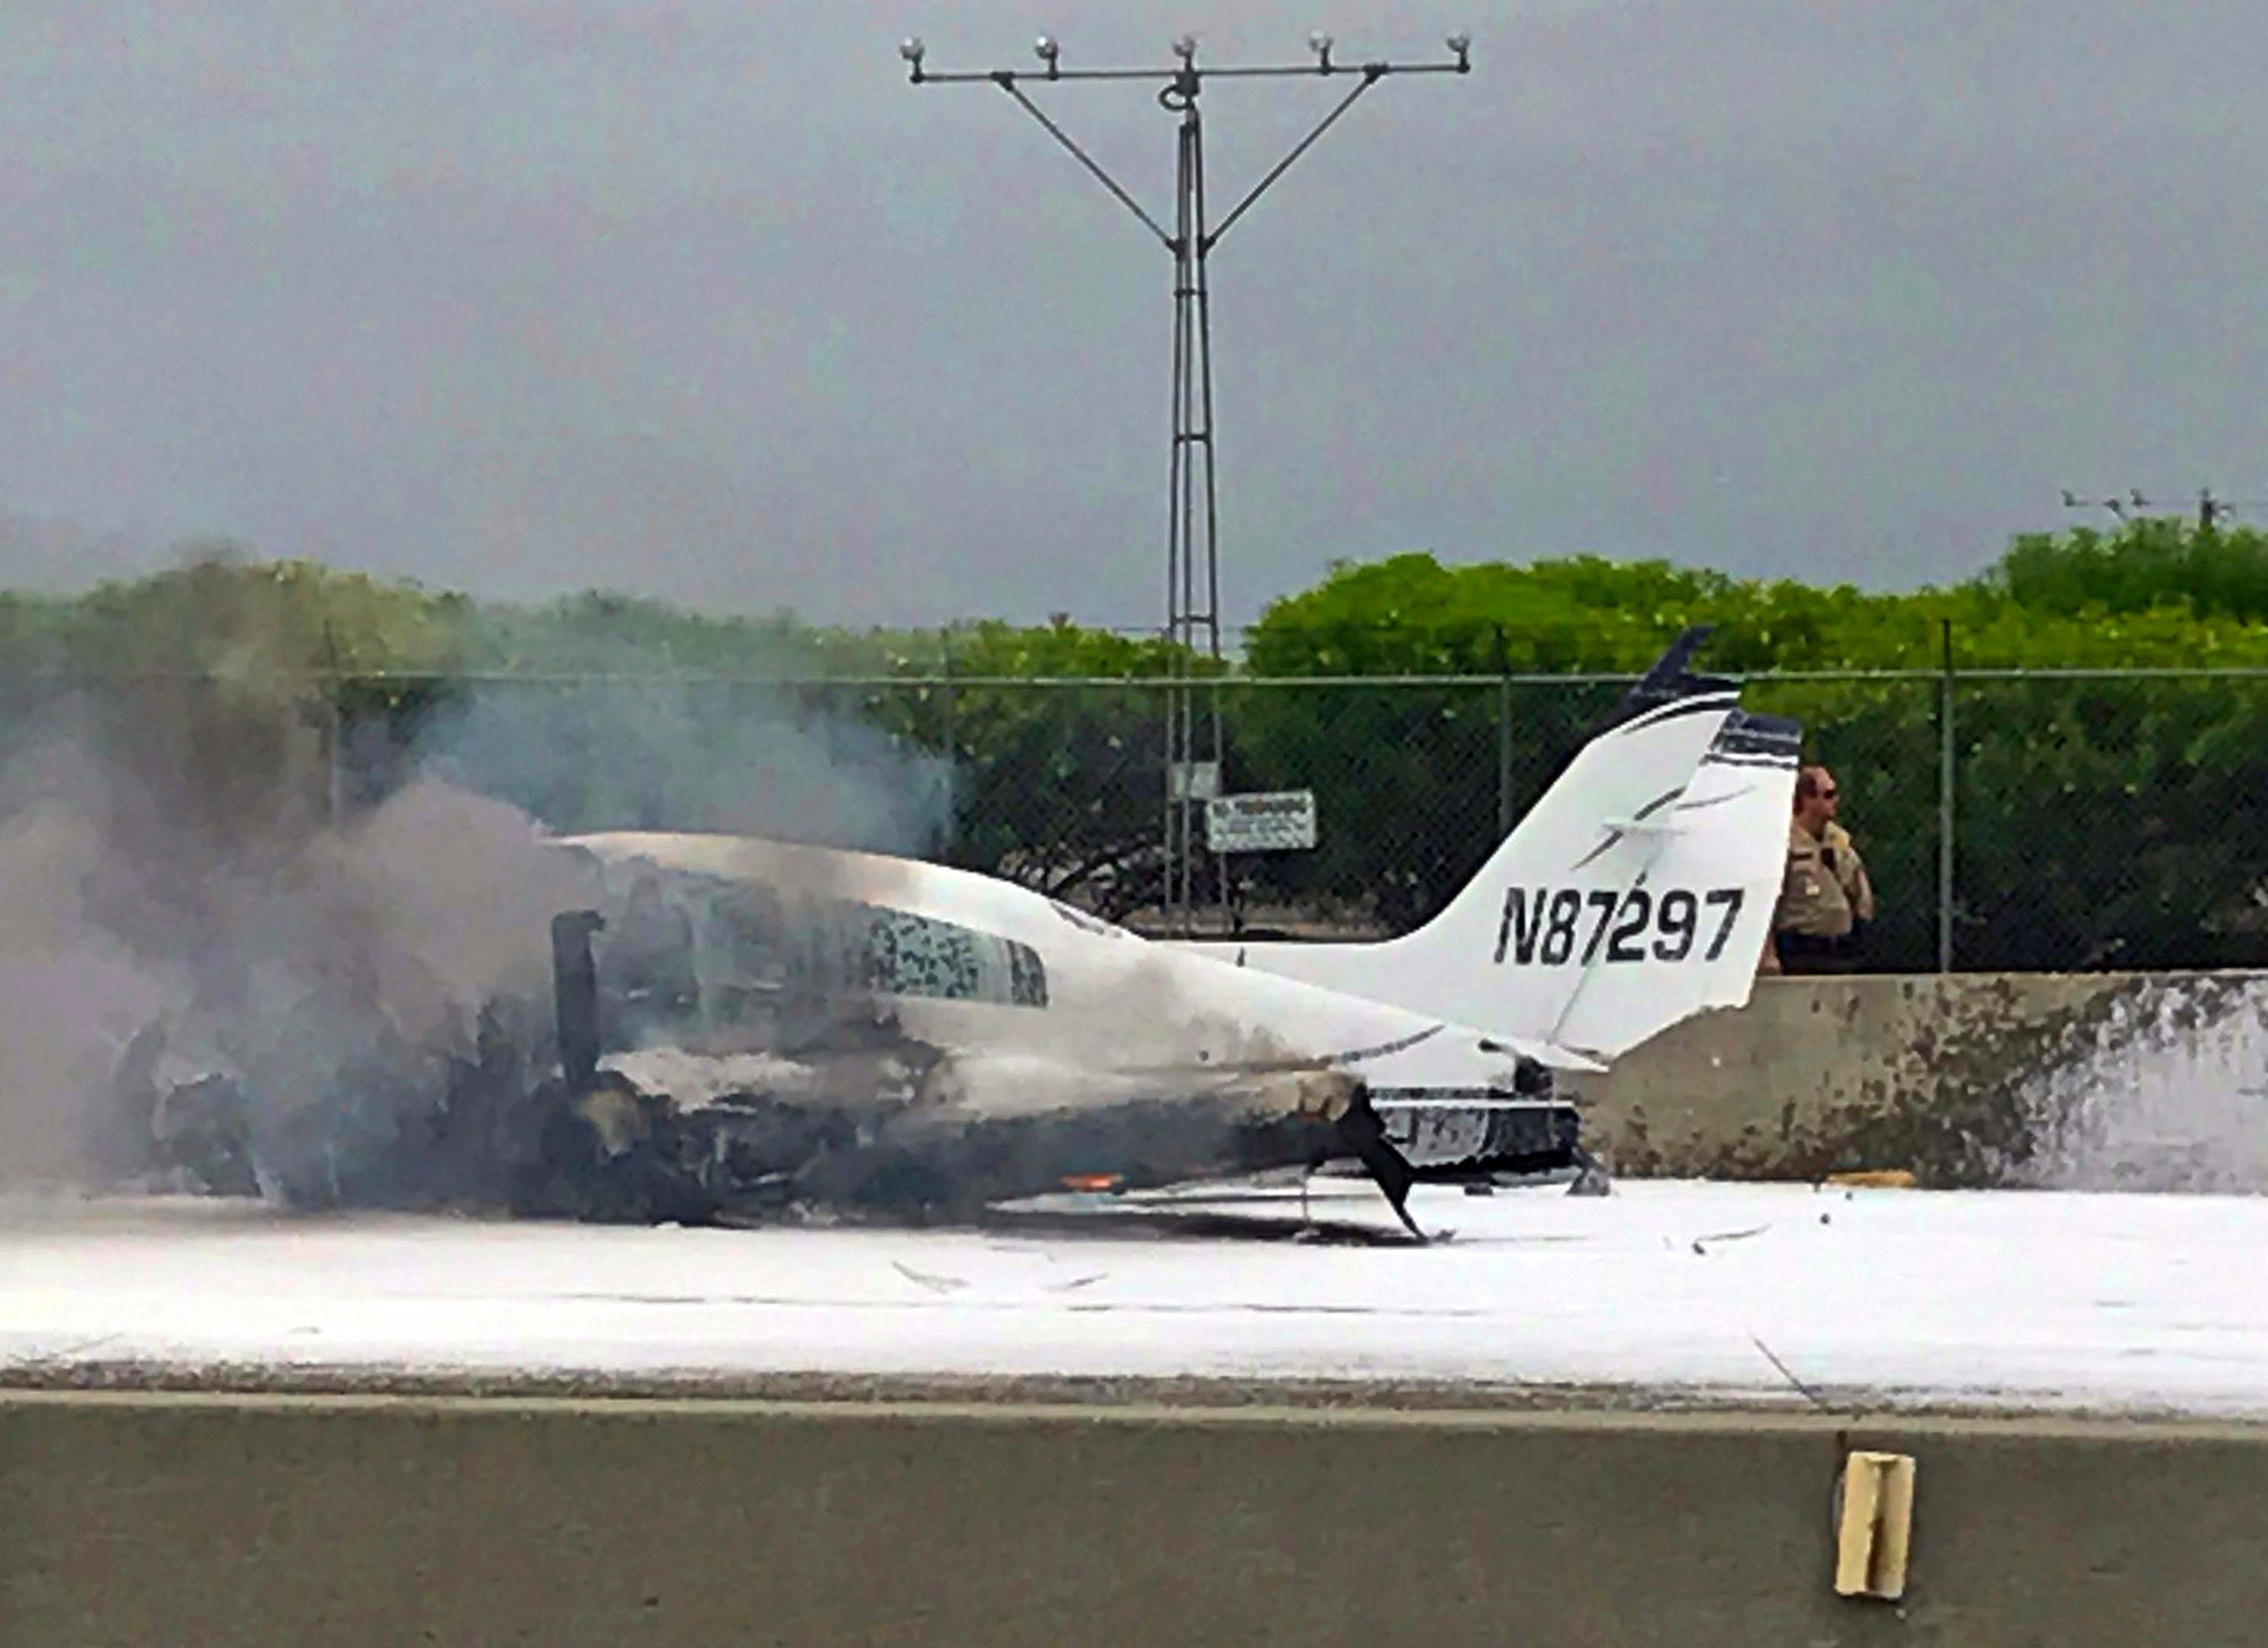 Flame and smoke erupt from a twin-engine prop jet after it crashed on Interstate 405, just short of the runway at John Wayne Orange County Airport, rear, in Costa Mesa, Calif., Friday, June 30, 2017. Officials said two people were injured and were taken by helicopter to a hospital. The freeway was shut down in both directions. (Wendy Haskell via AP)